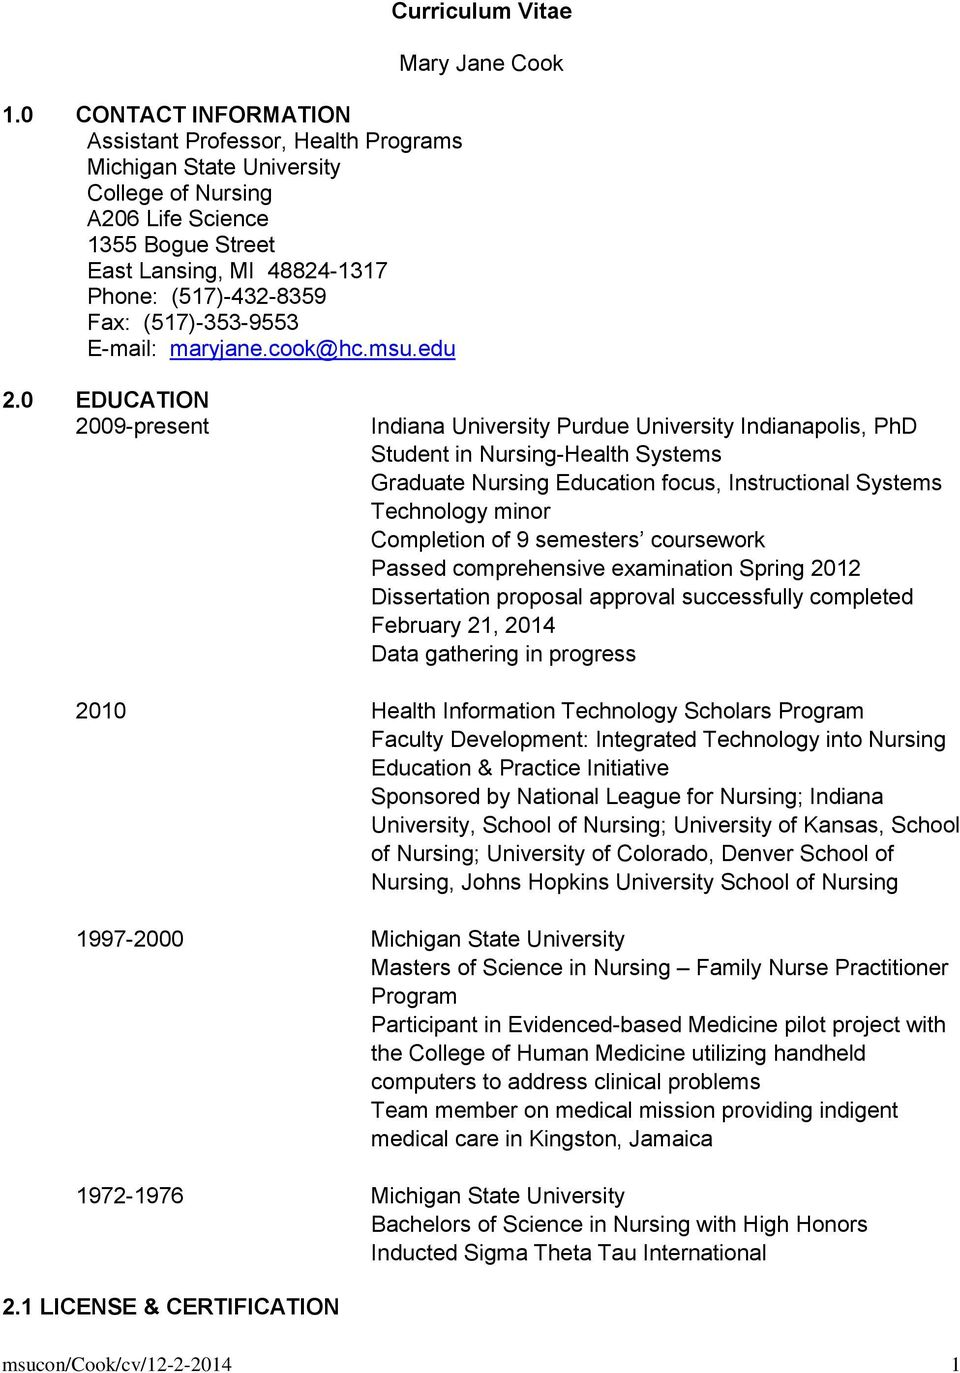 0 EDUCATION 2009-present Indiana University Purdue University Indianapolis, PhD Student in Nursing-Health Systems Graduate Nursing Education focus, Instructional Systems Technology minor Completion